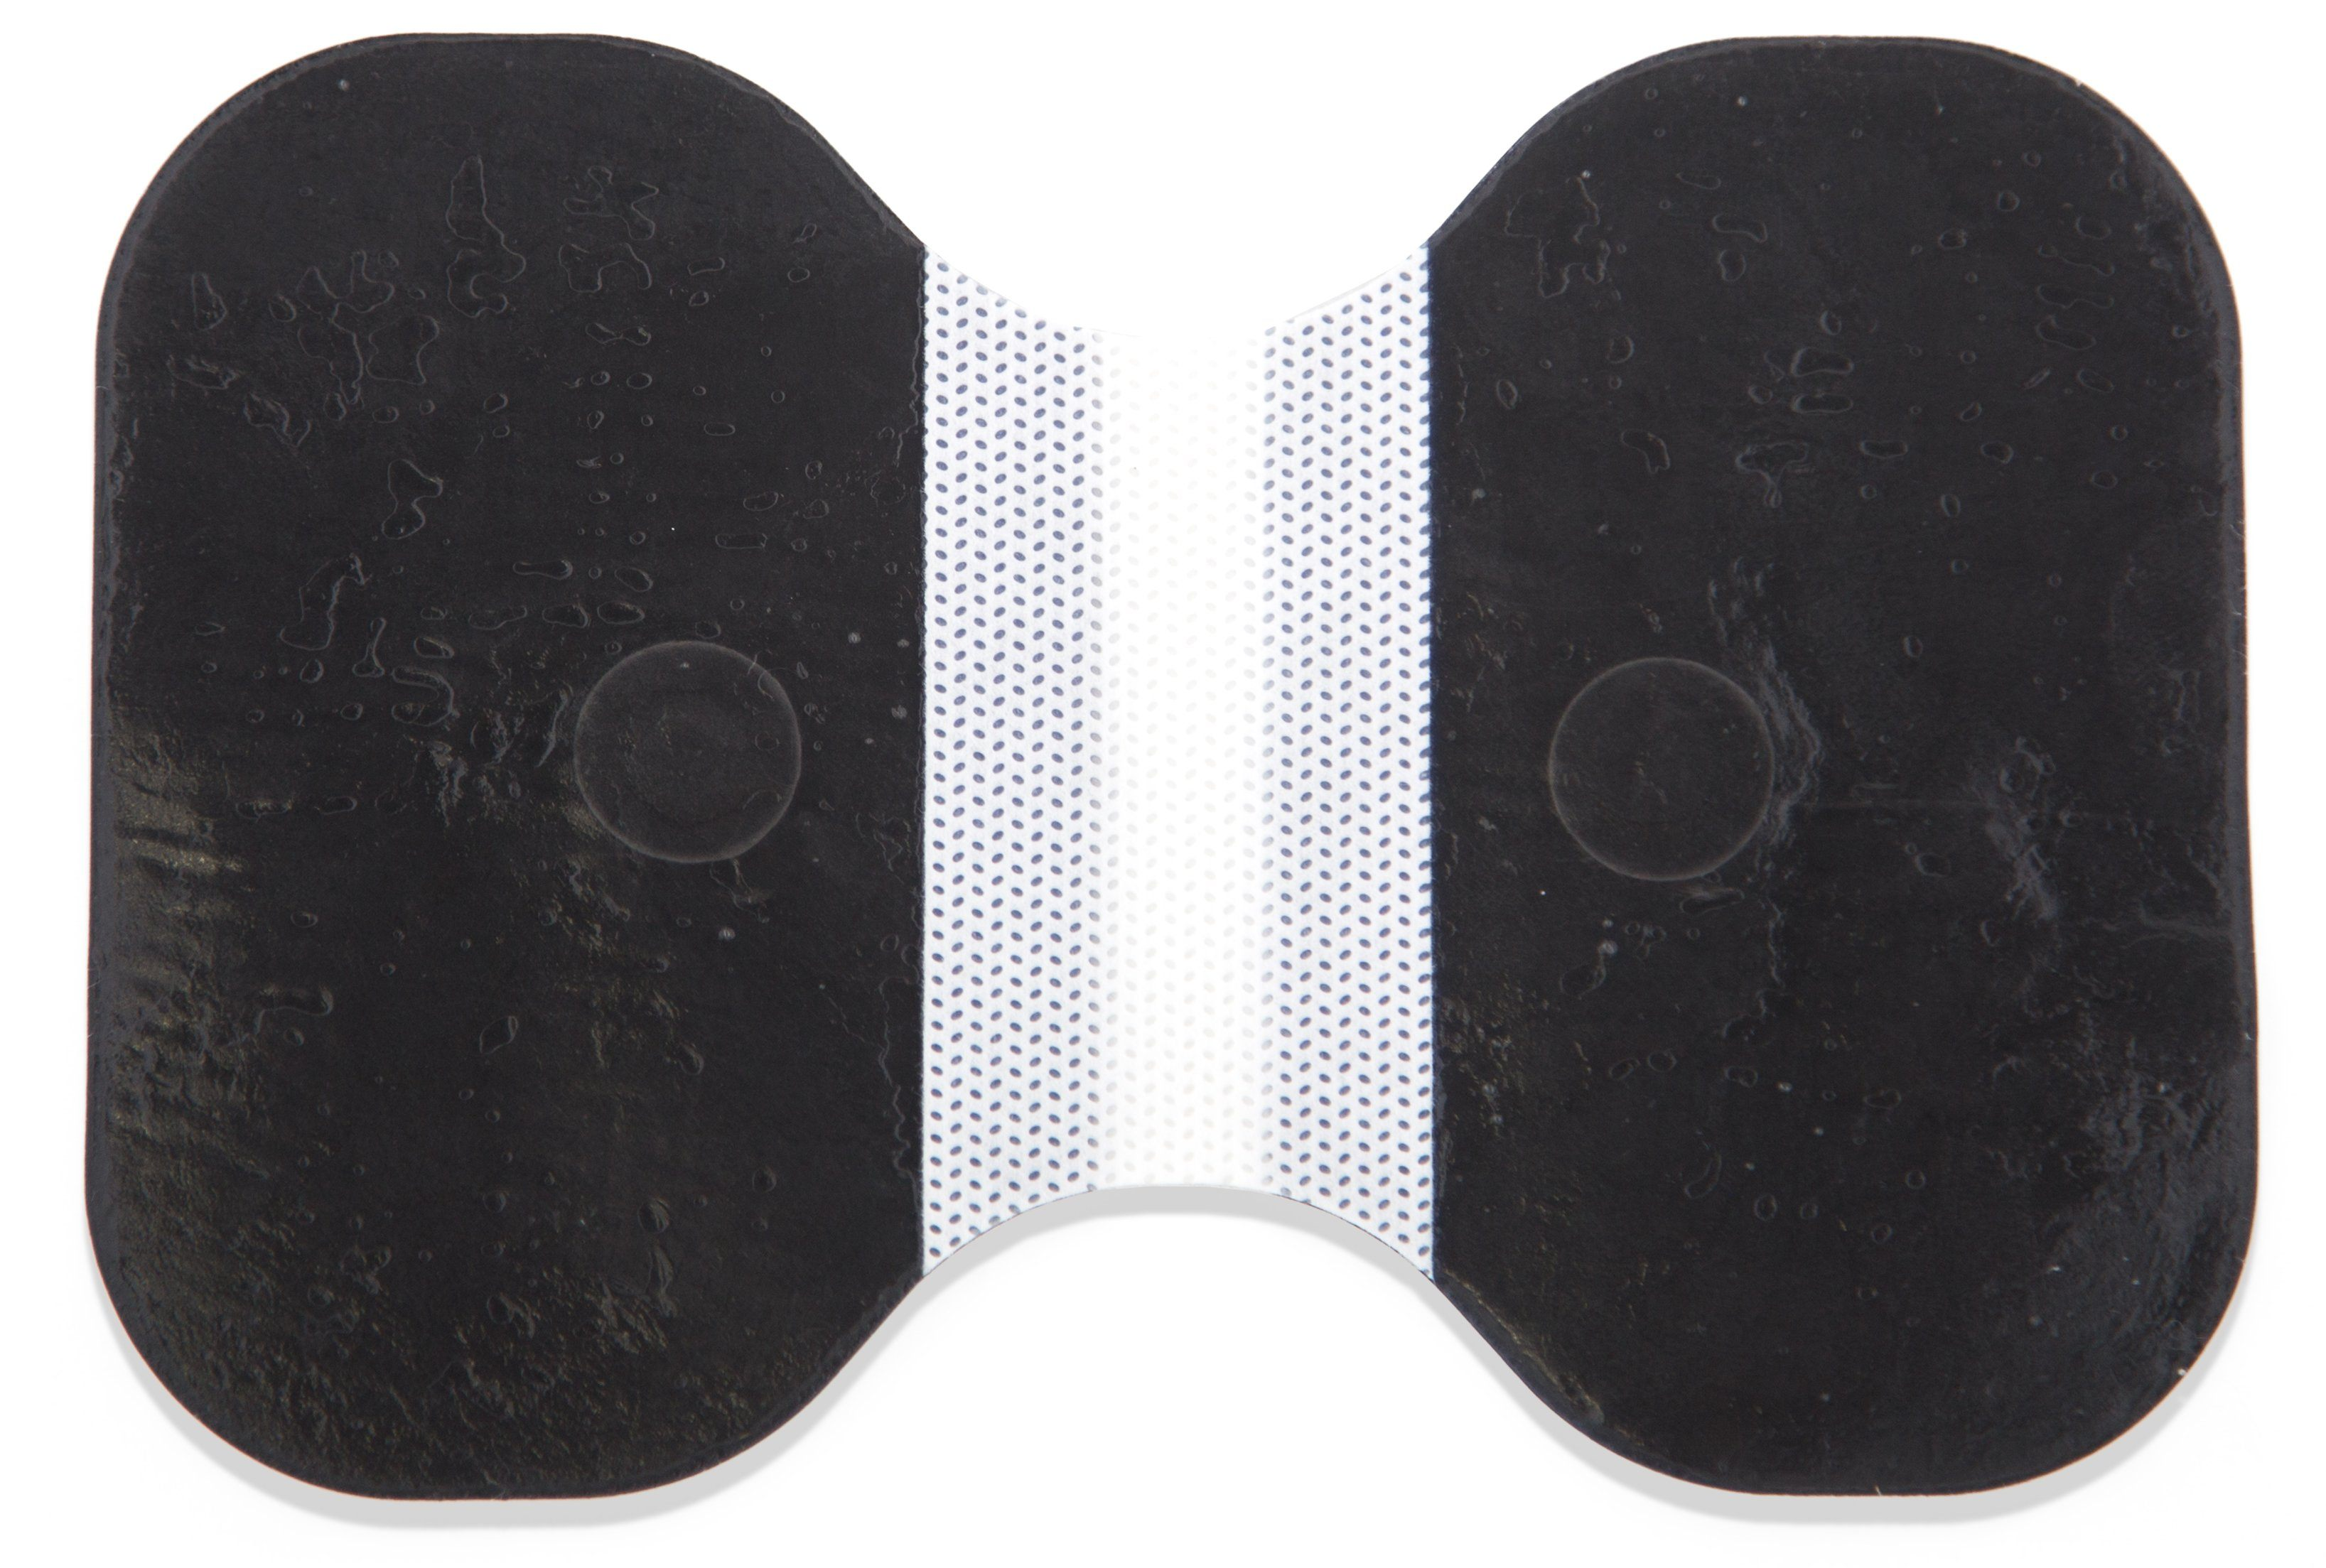 Count on truMedics American-made butterfly electrode pads to treat chronic pain in an instant. Apply within seconds and take back control. FREE SHIPPING